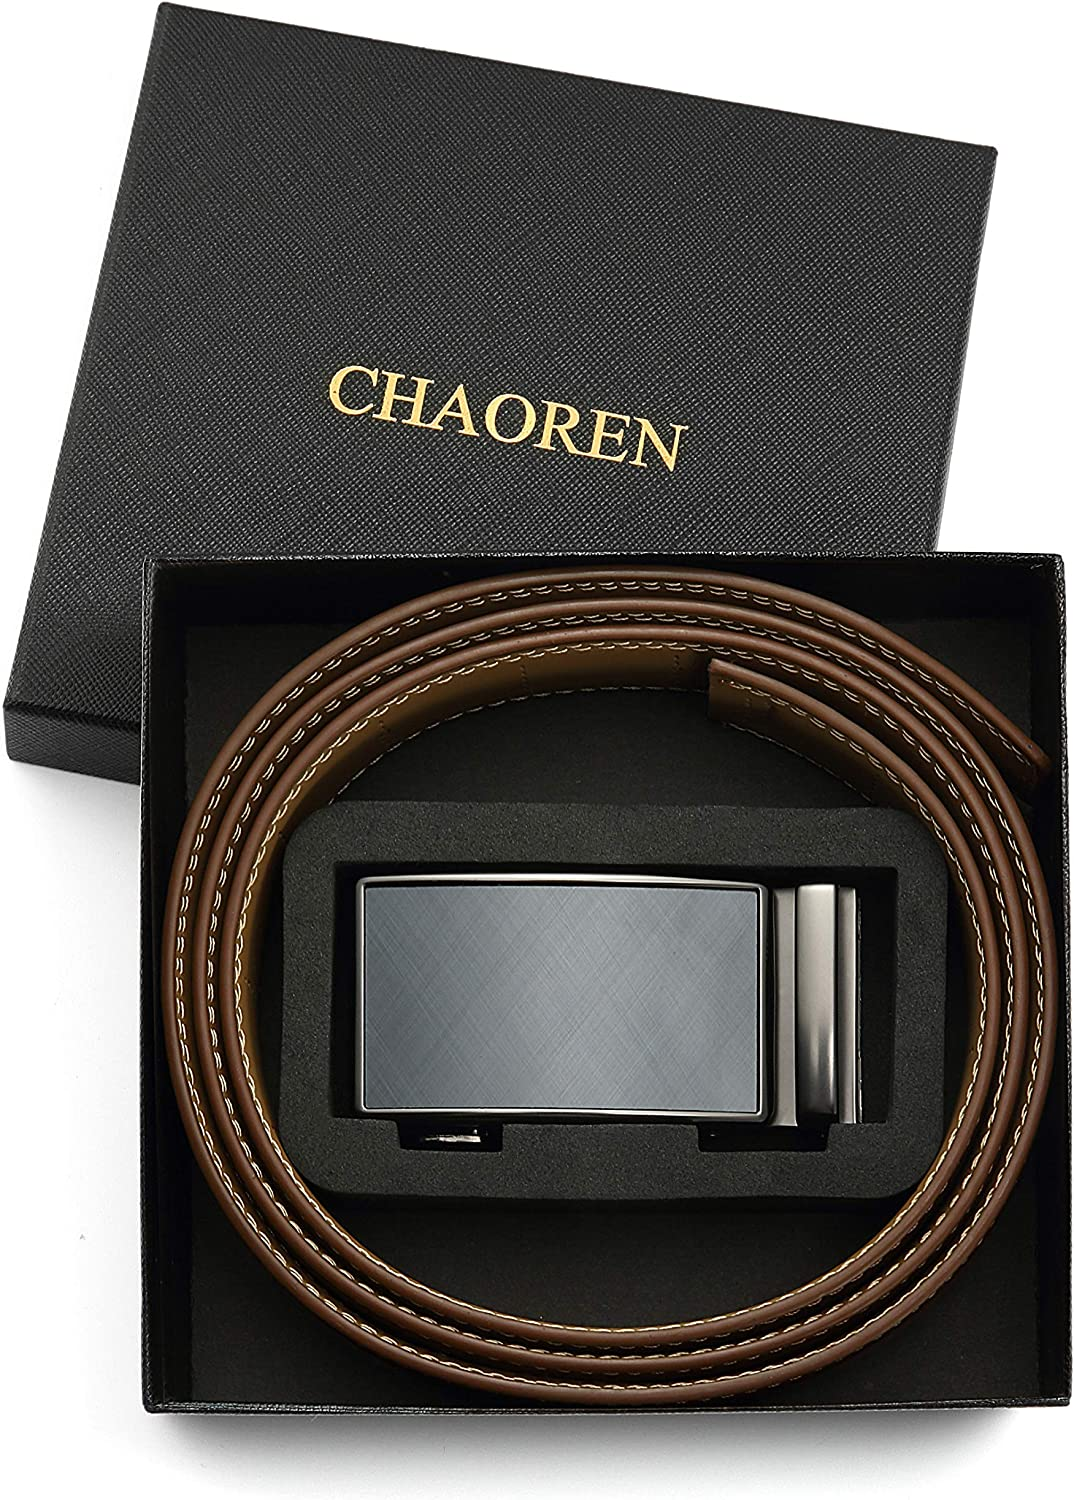 Chaoren Leather Ratchet Dress Belt 1 3/8 with Formal Slide Buckle, Adjustable Trim to Fit in Gift Box